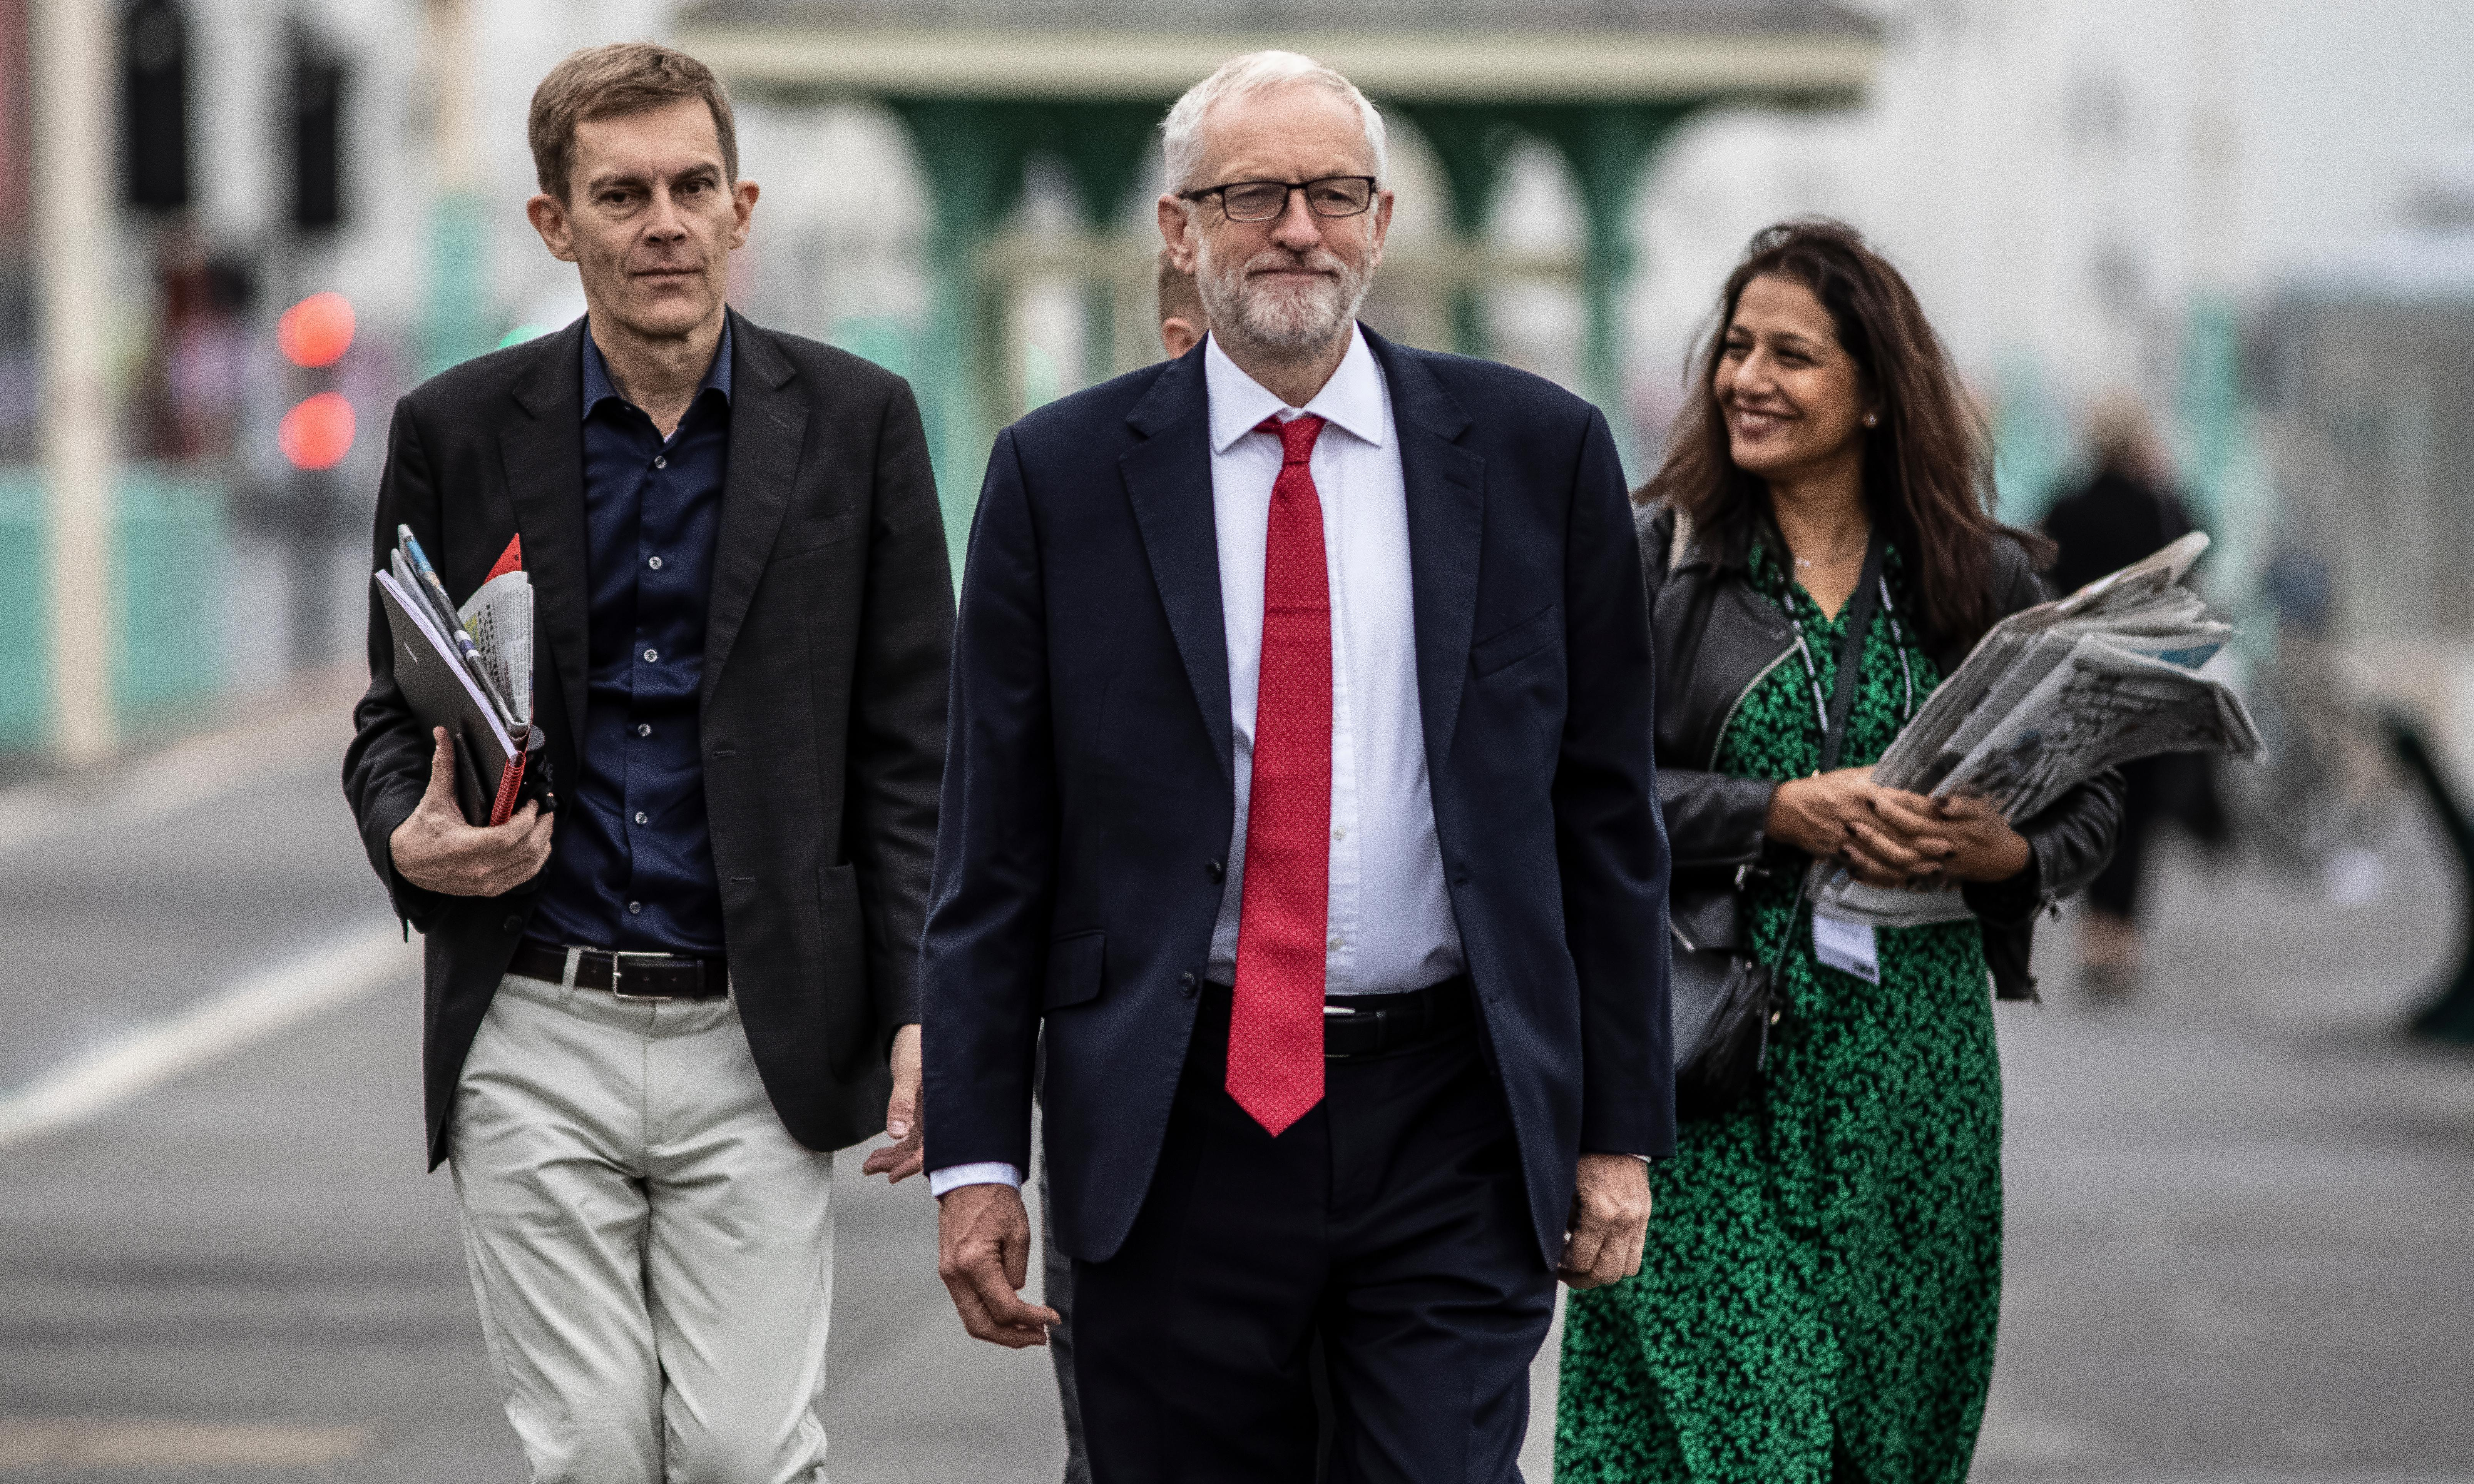 Corbyn suggests UK could be better off after Brexit if deal is right